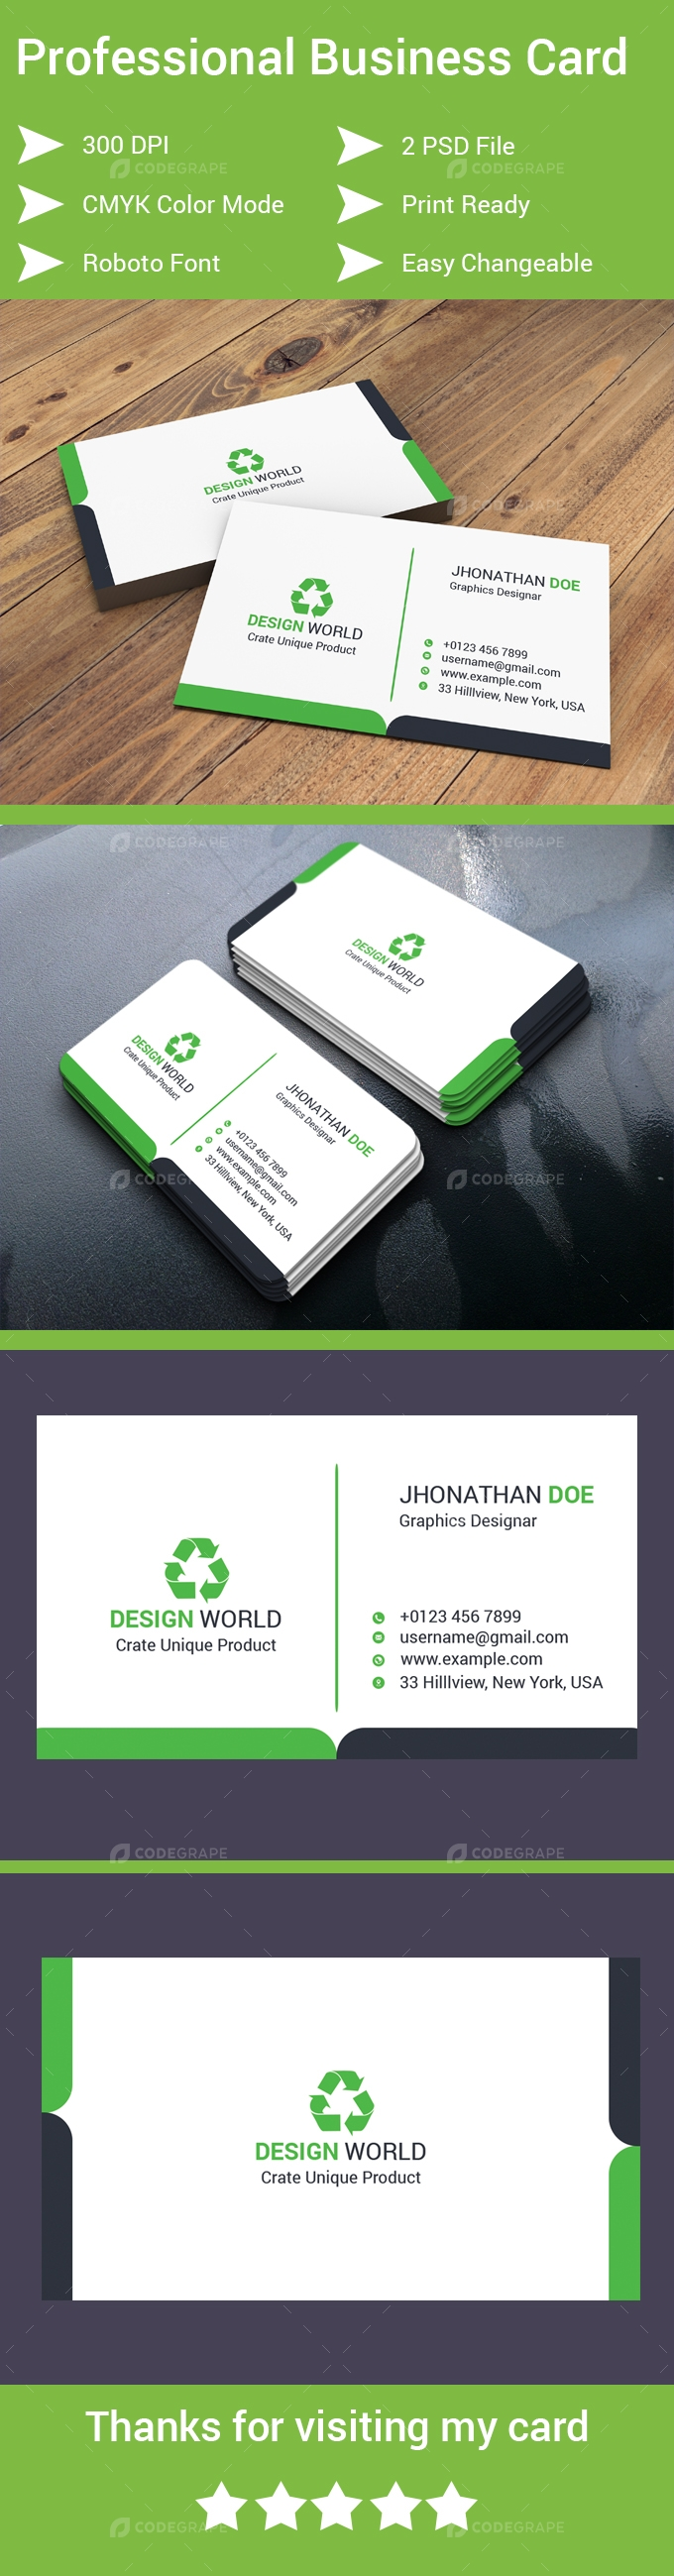 ff89b324da2d4 Professional Business Card - Print